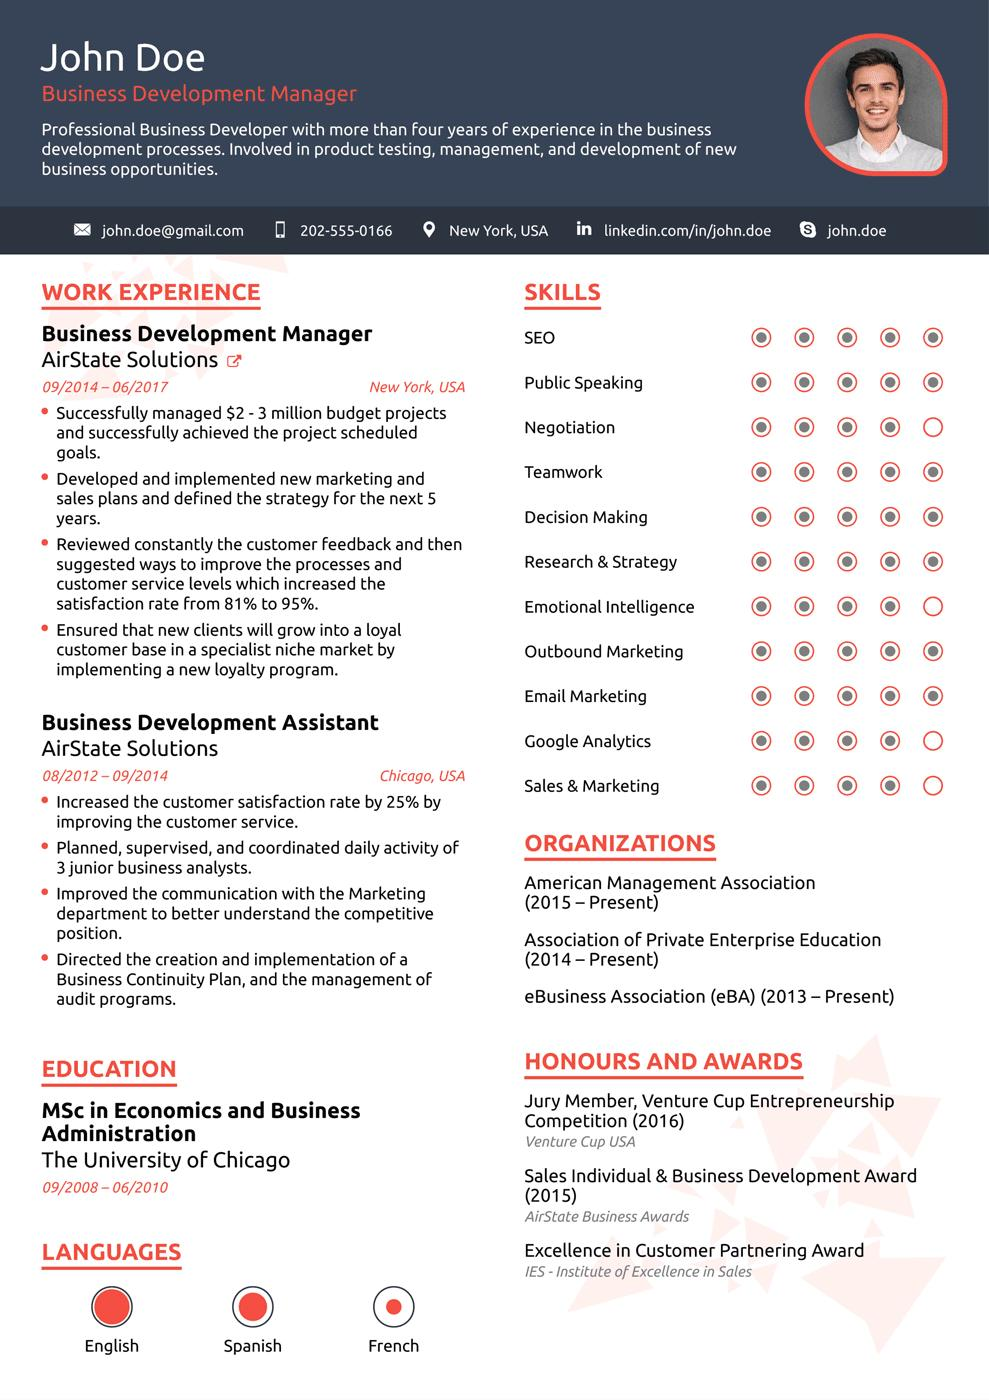 59 Cool Latest Resume Layout with Design